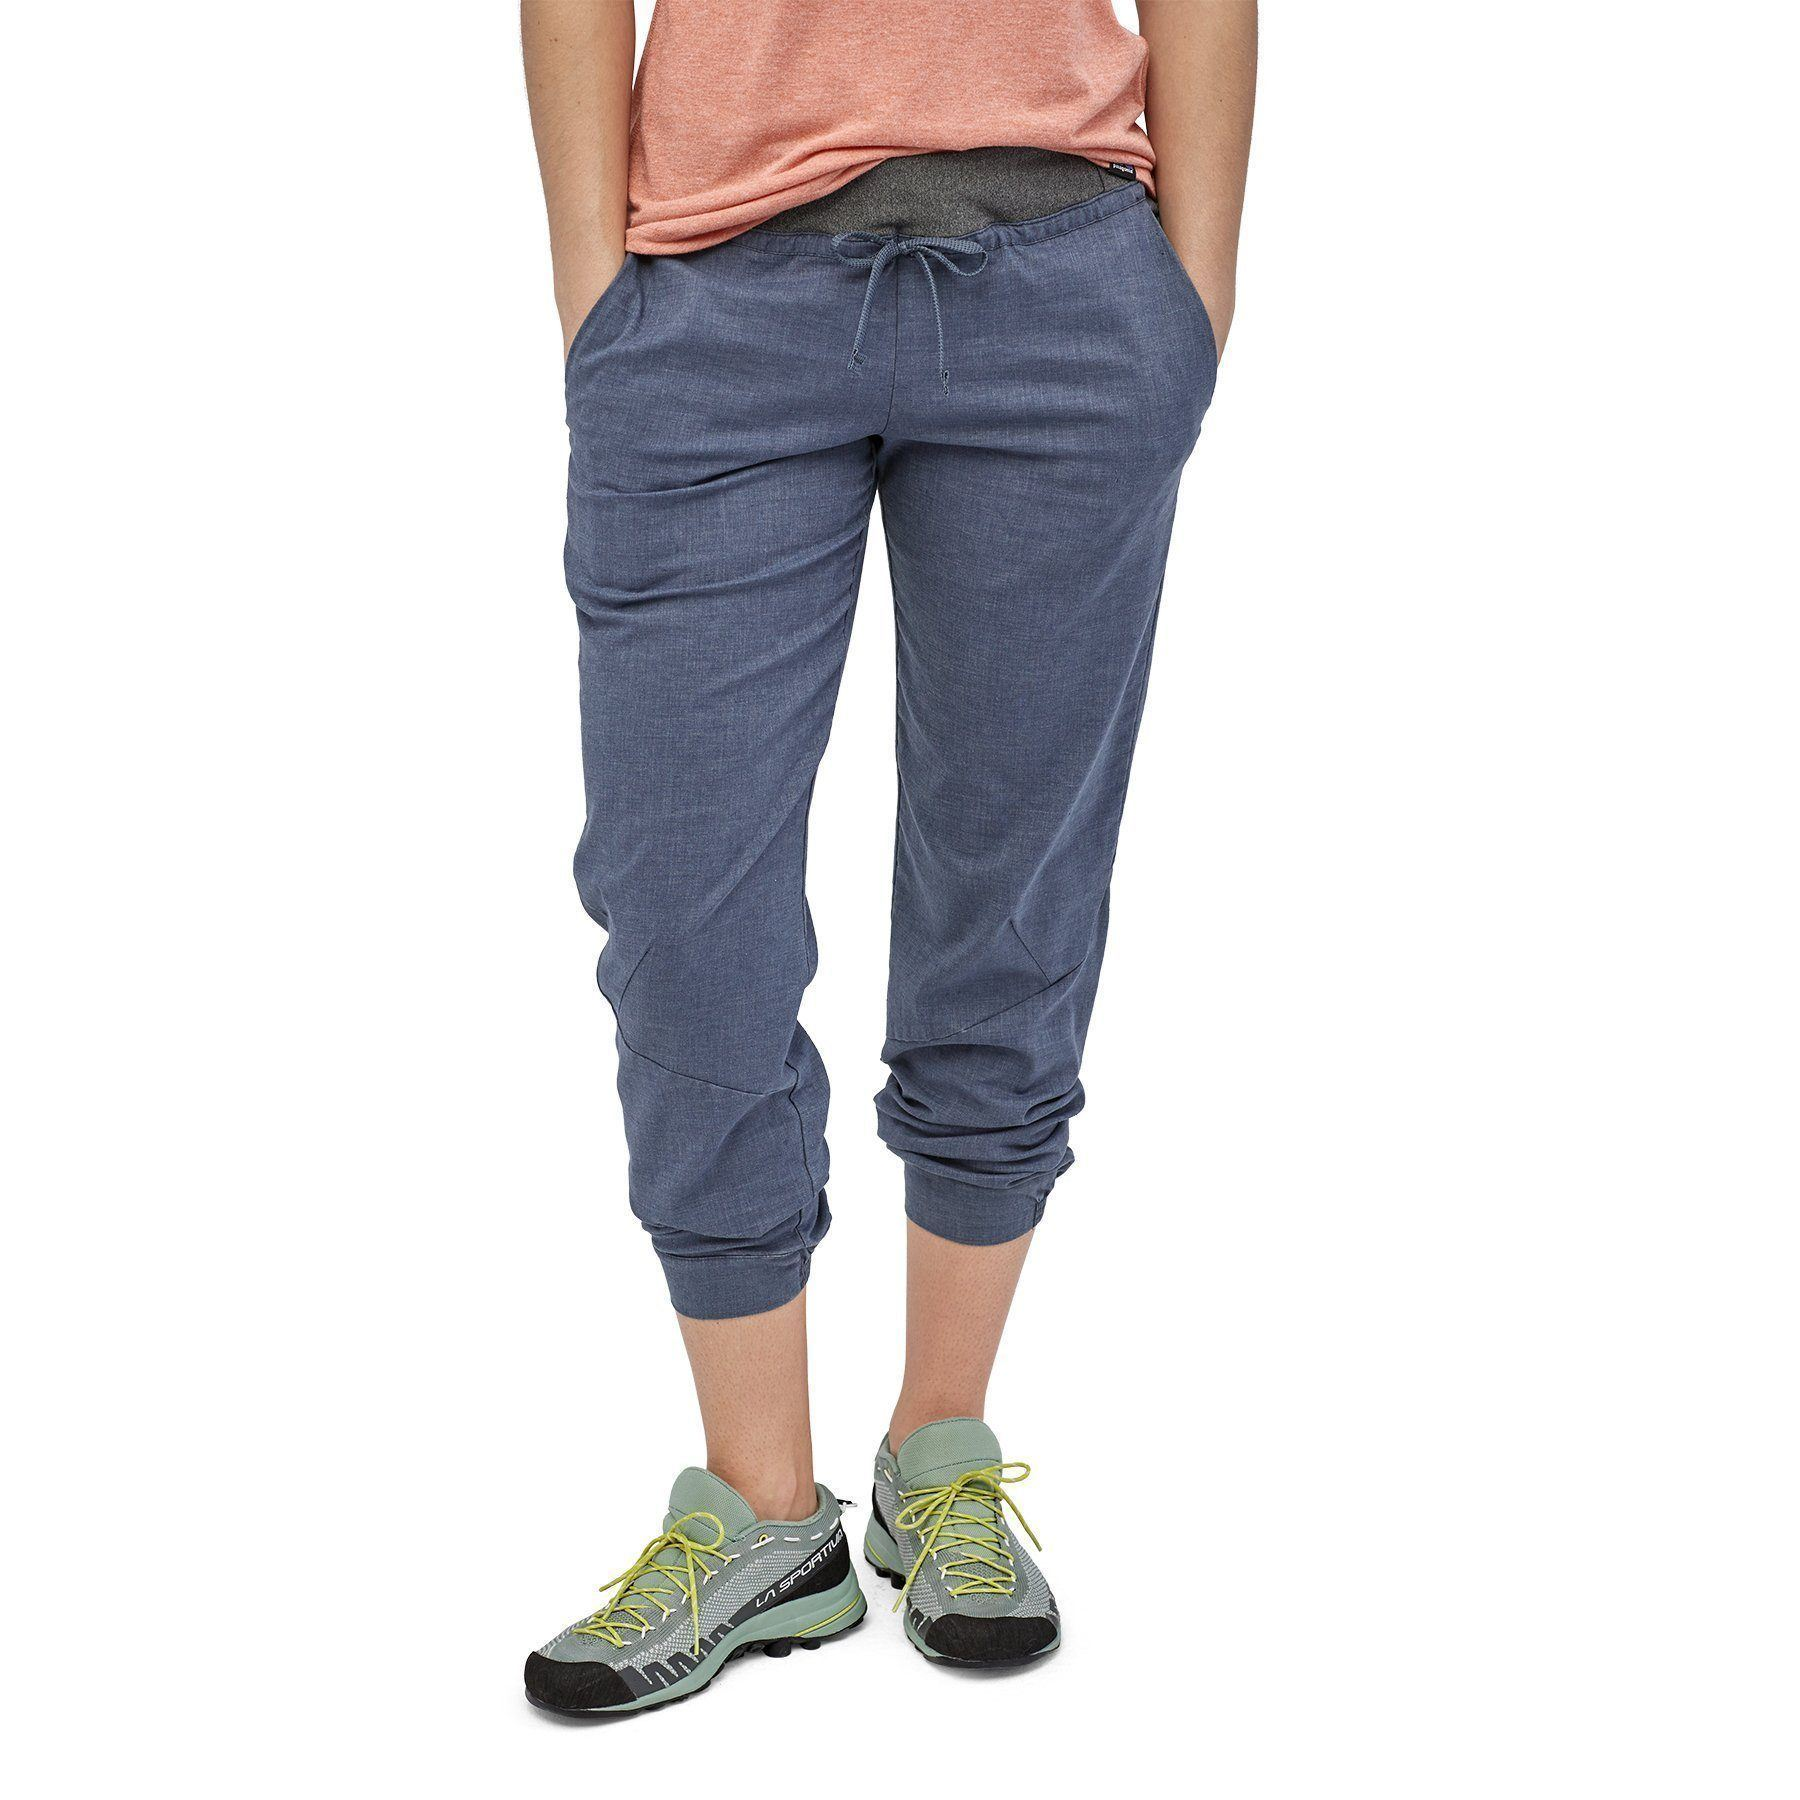 Patagonia - W's Hampi Rock Pants - Hemp / Recycled Polyester - Weekendbee - sustainable sportswear